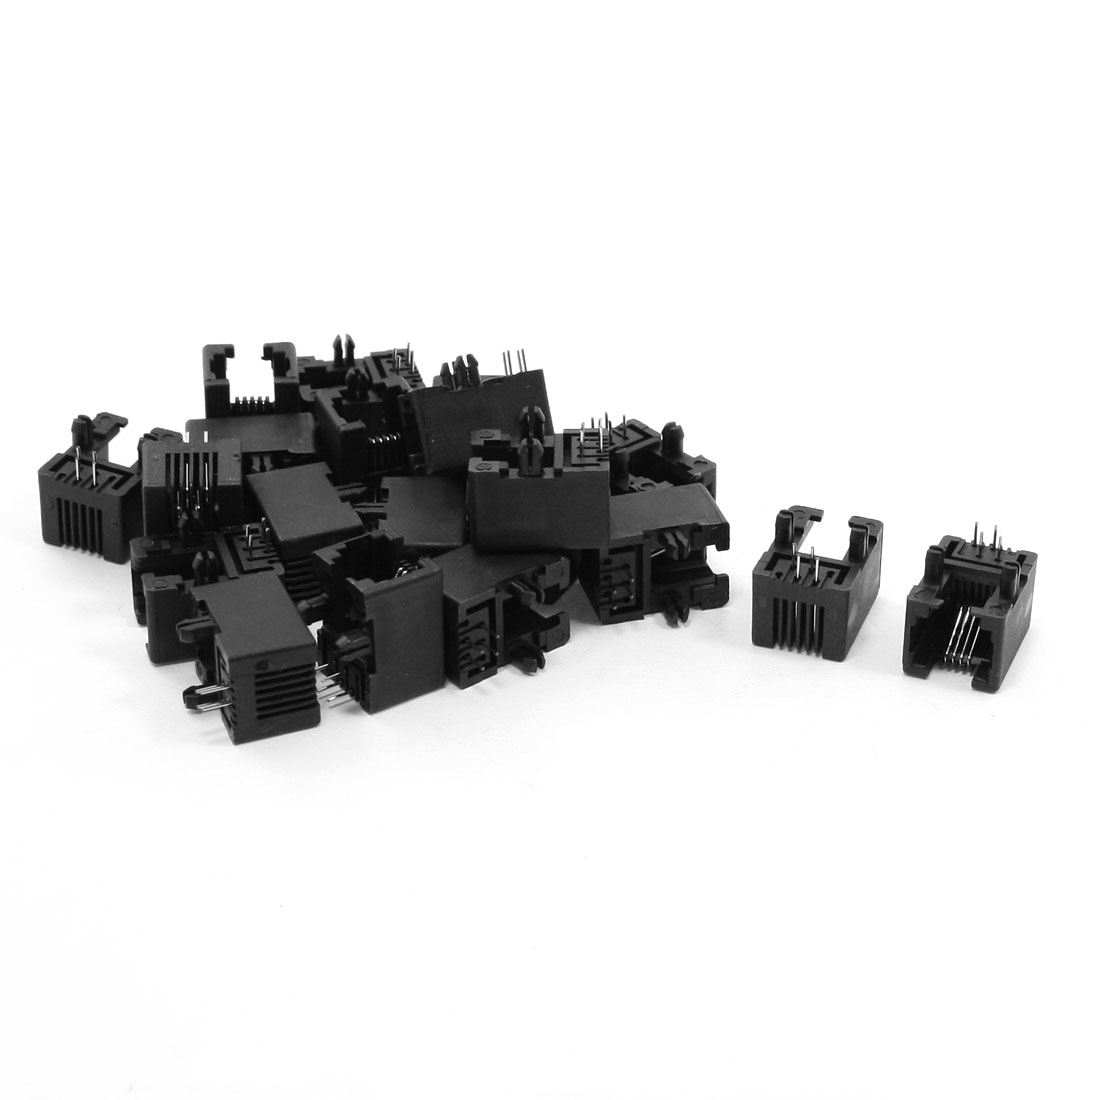 20 Pcs RJ11 6P4C PCB Jacks Plastic Ports for ADSL Network Modern